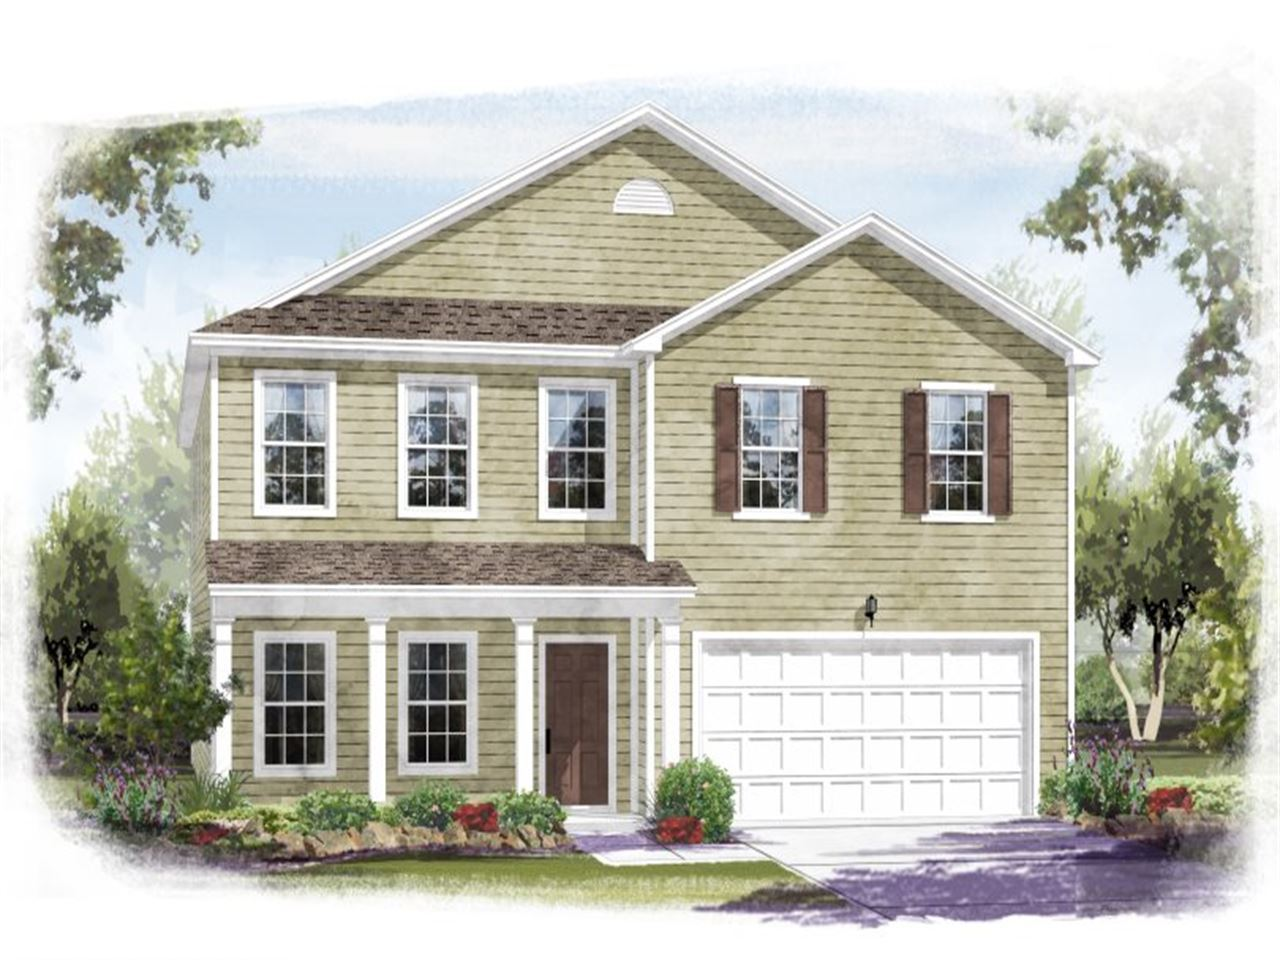 Whitmire - Hucks Landing: Charlotte, NC - Ryland Homes